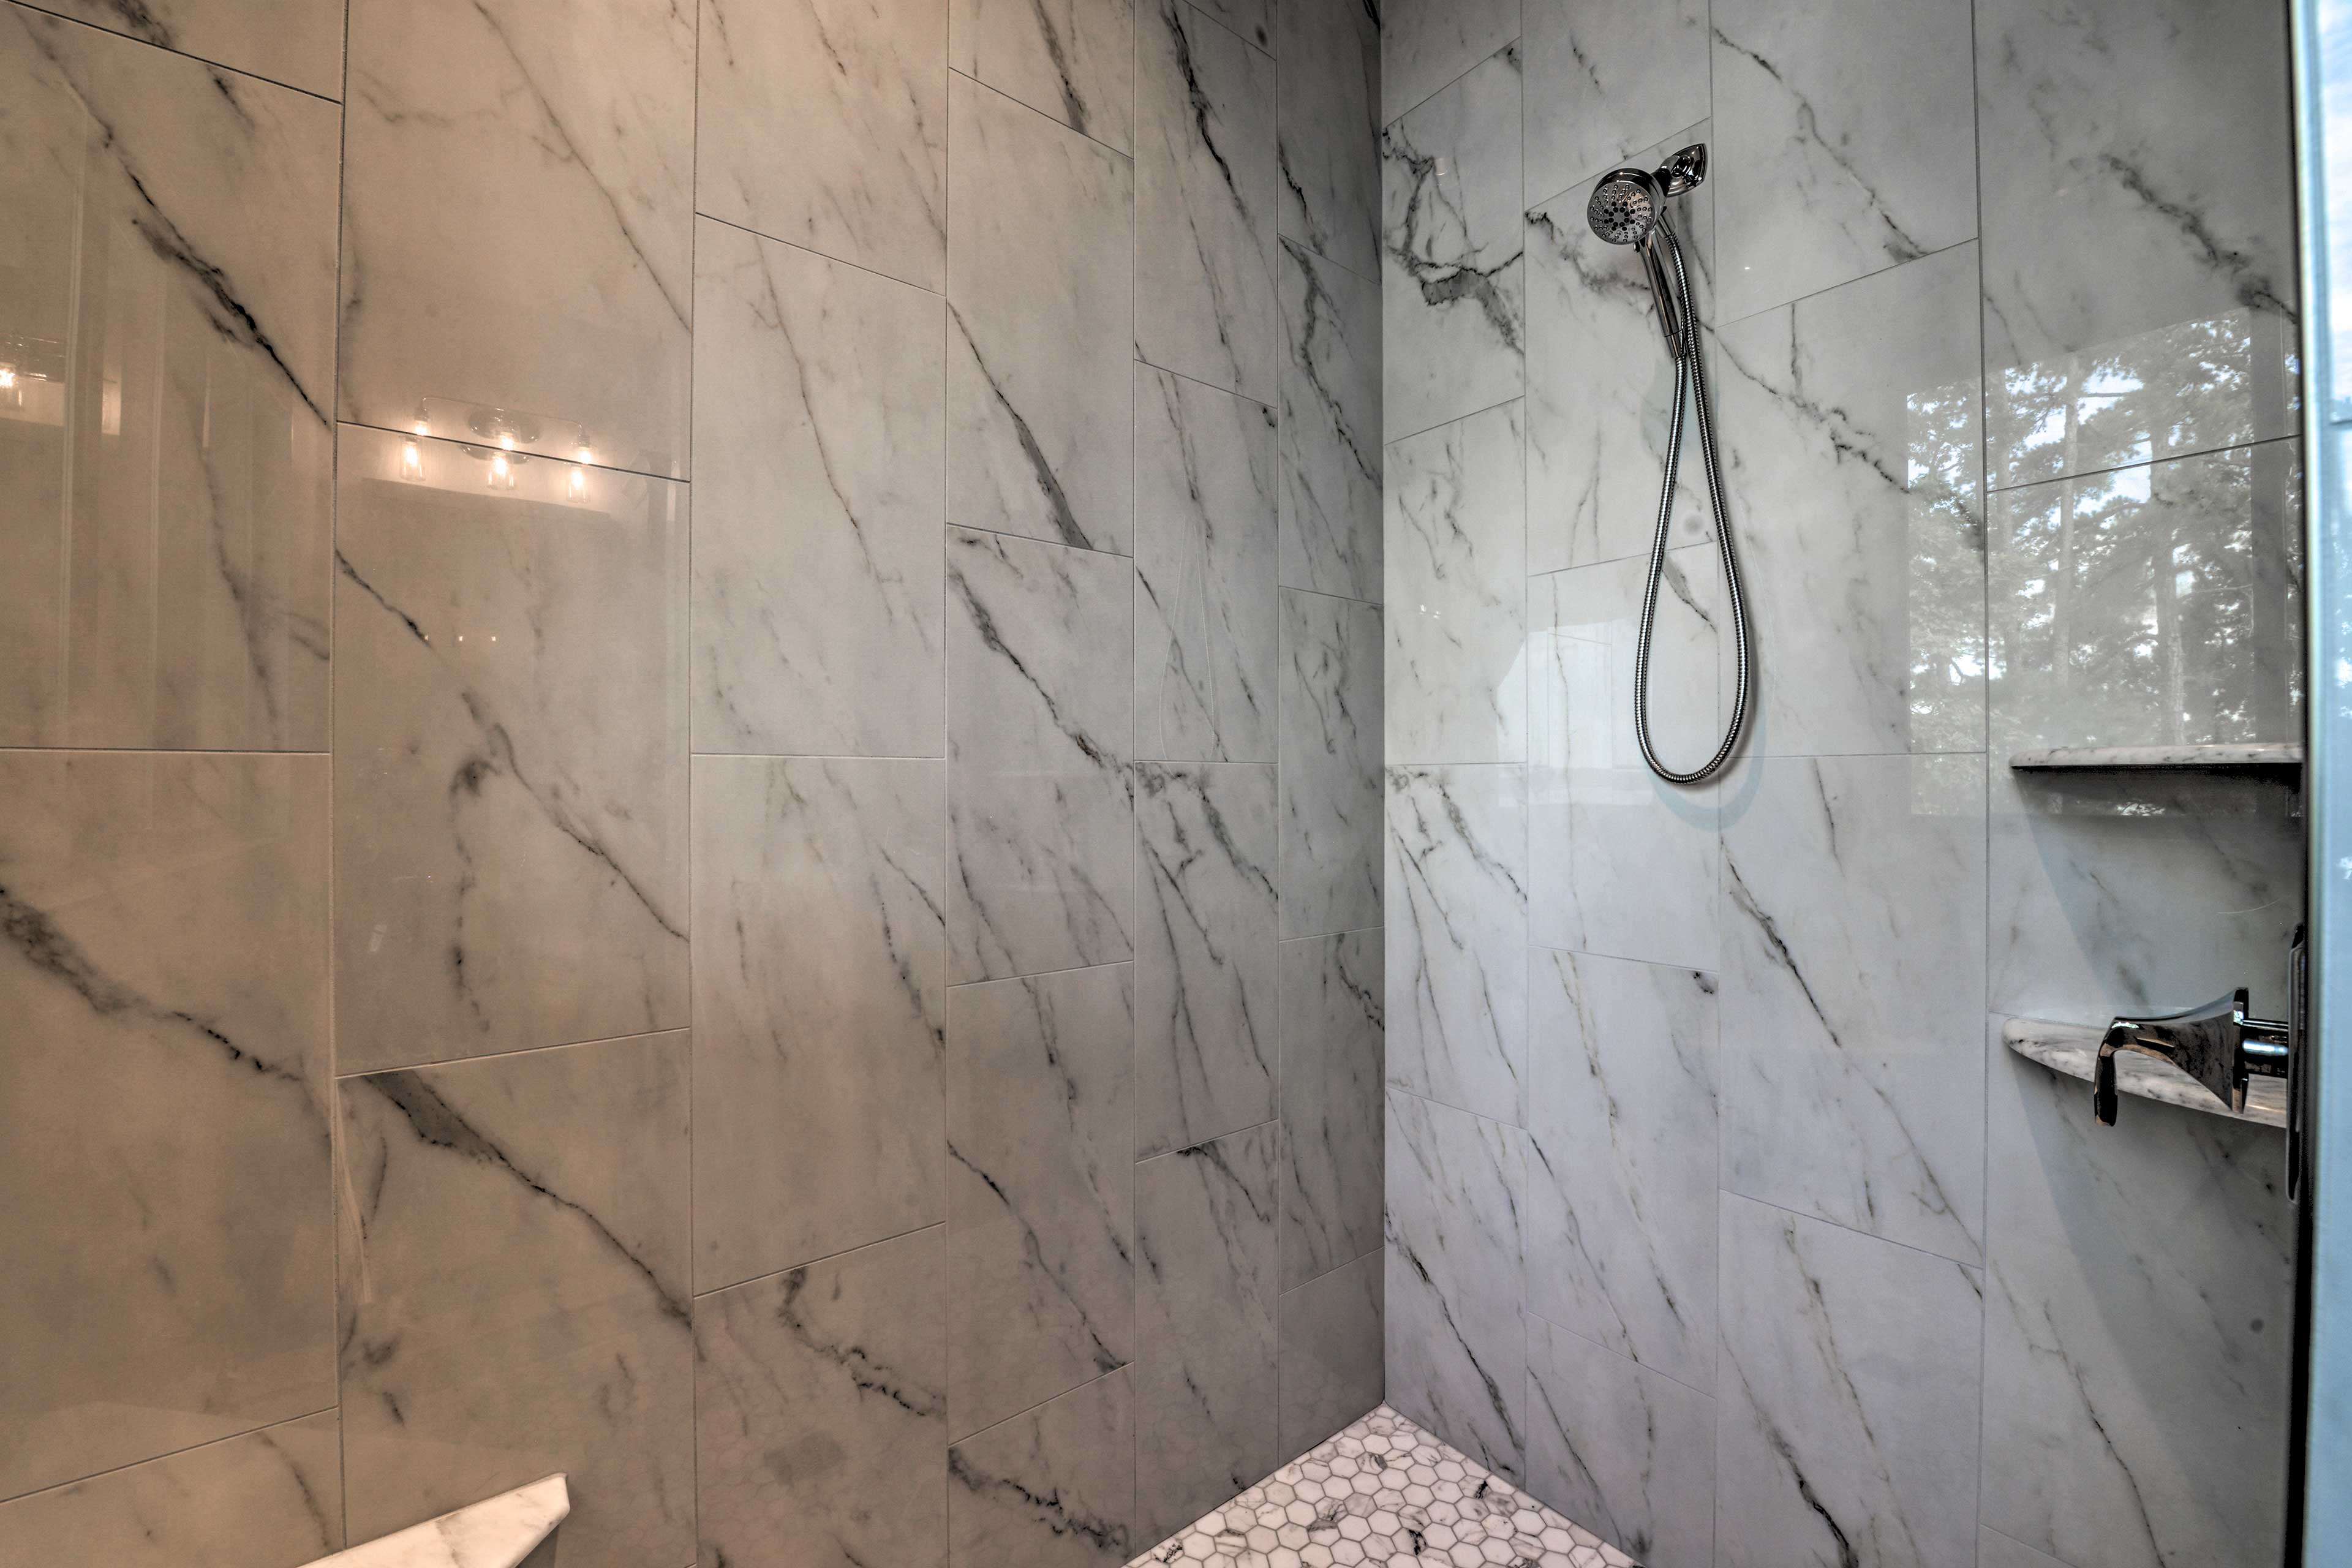 Rinse off the lake water in the walk-in shower.